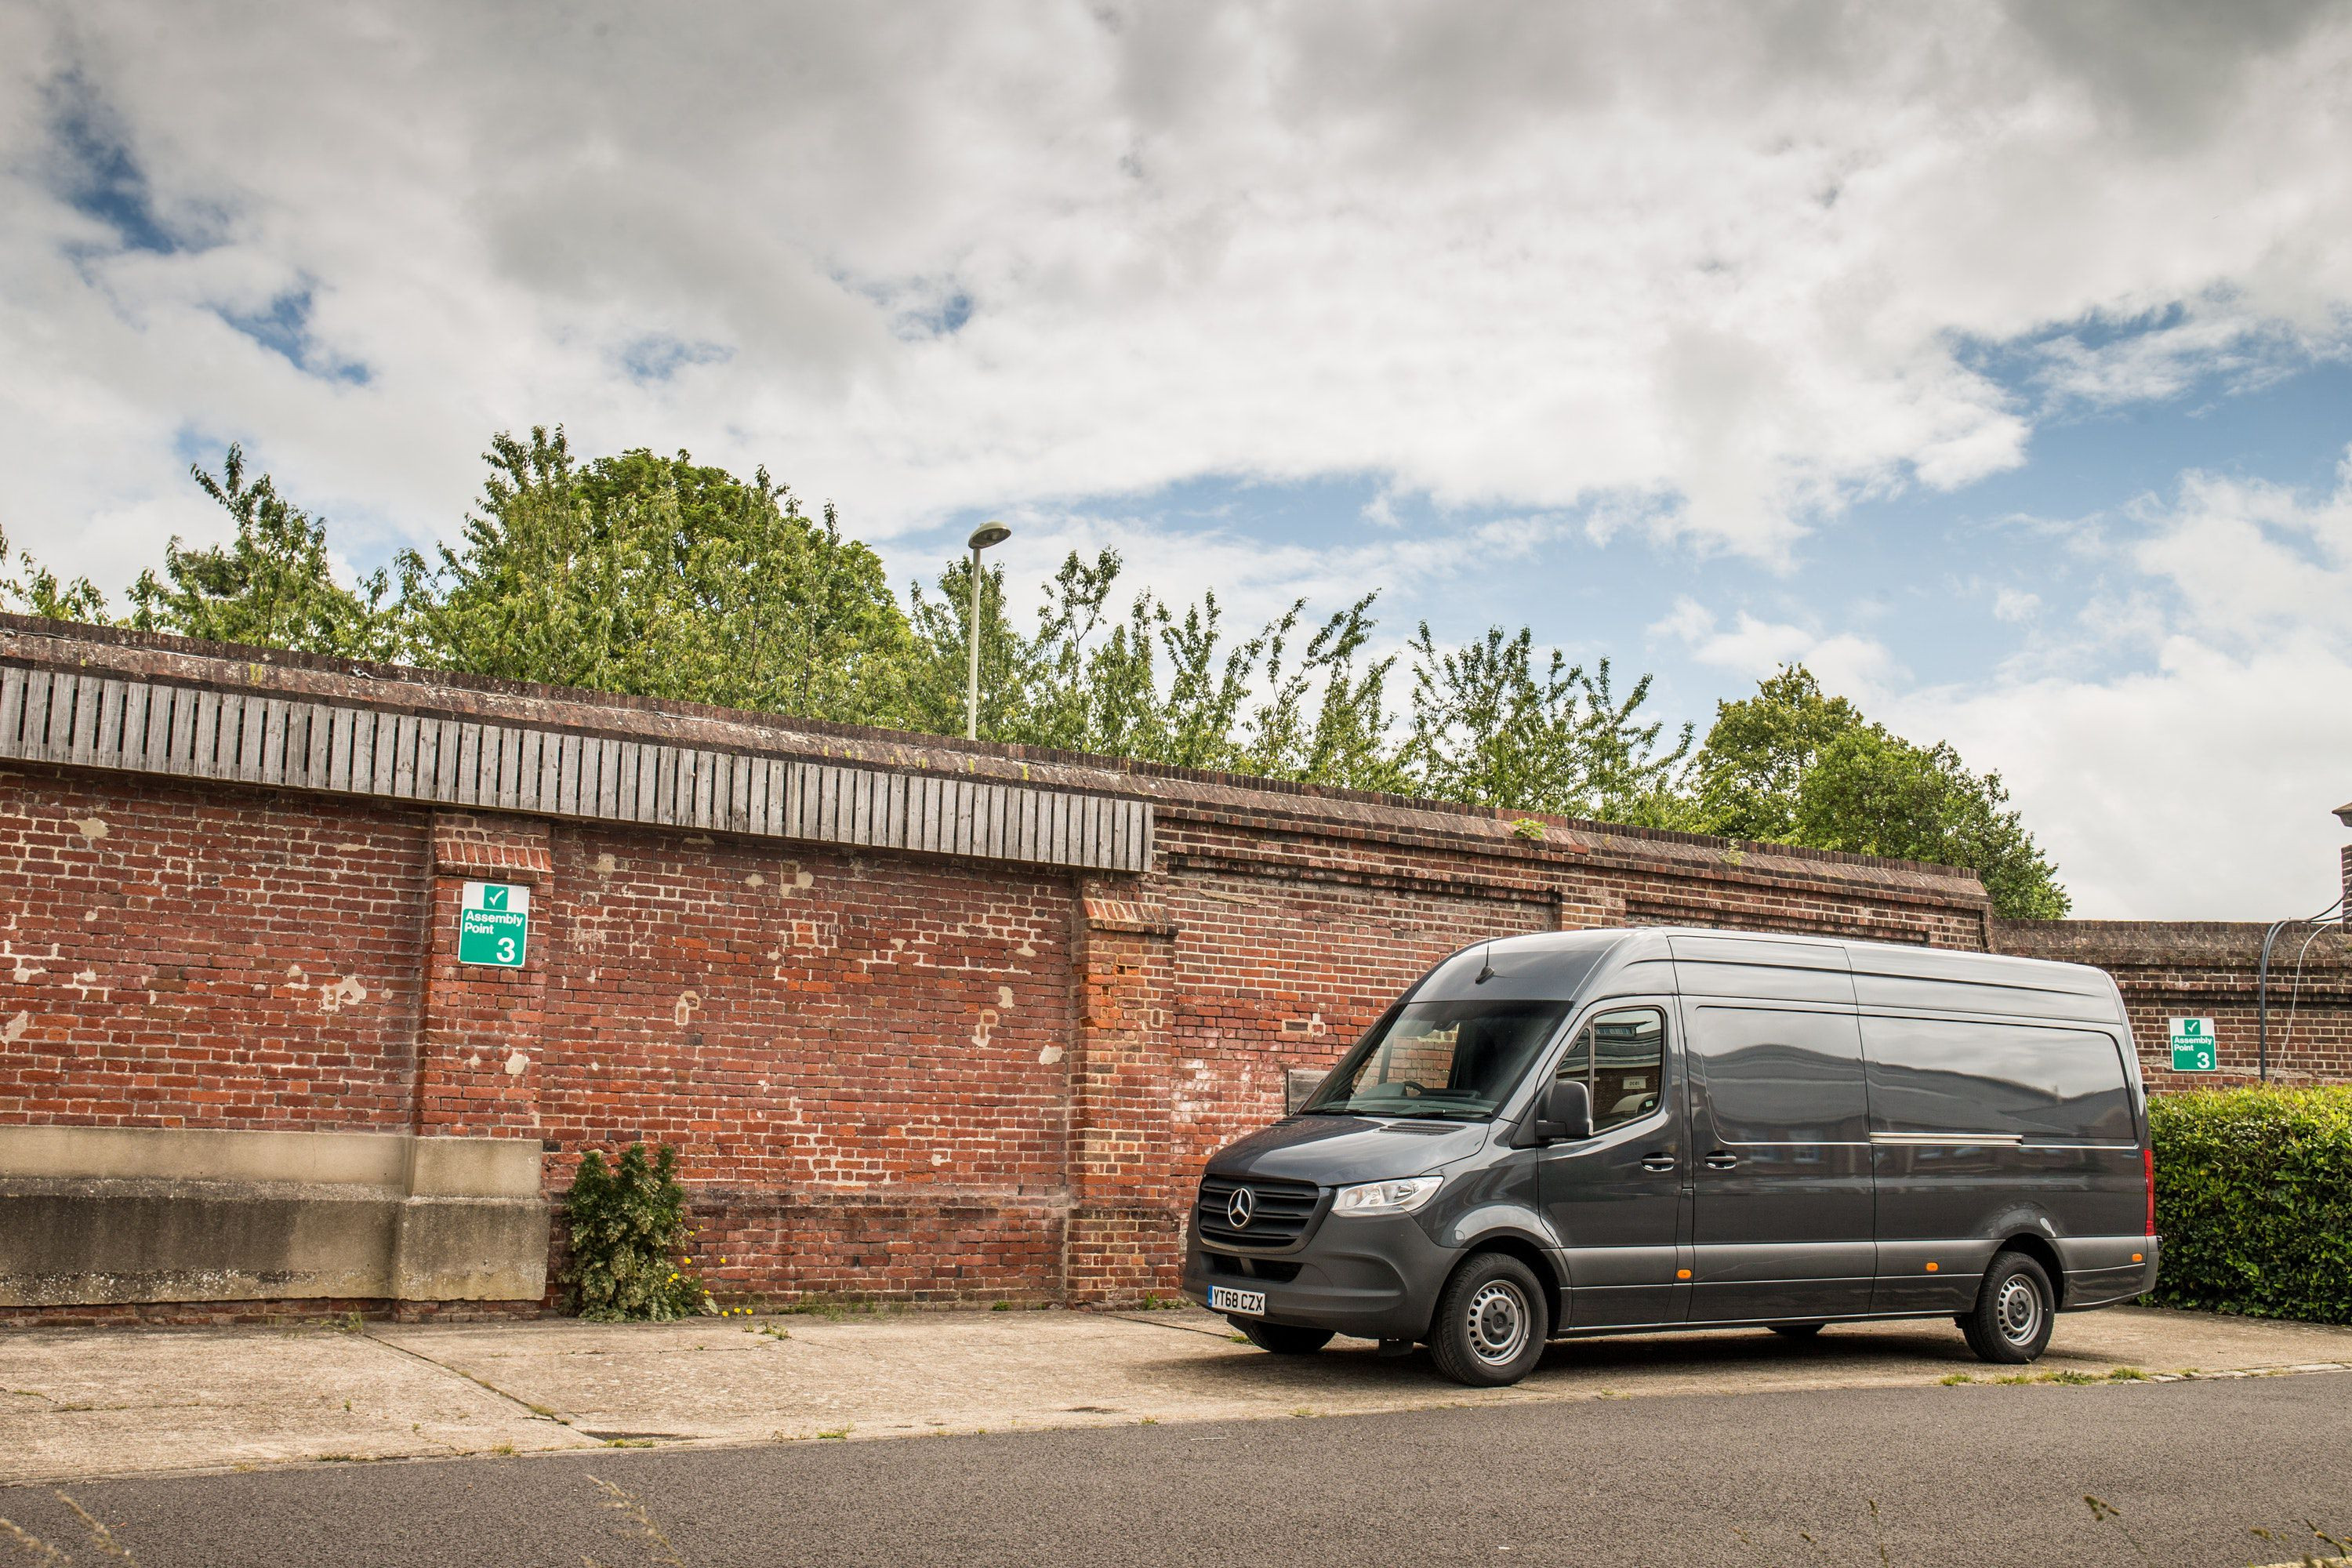 side view of Mercedes sprinter